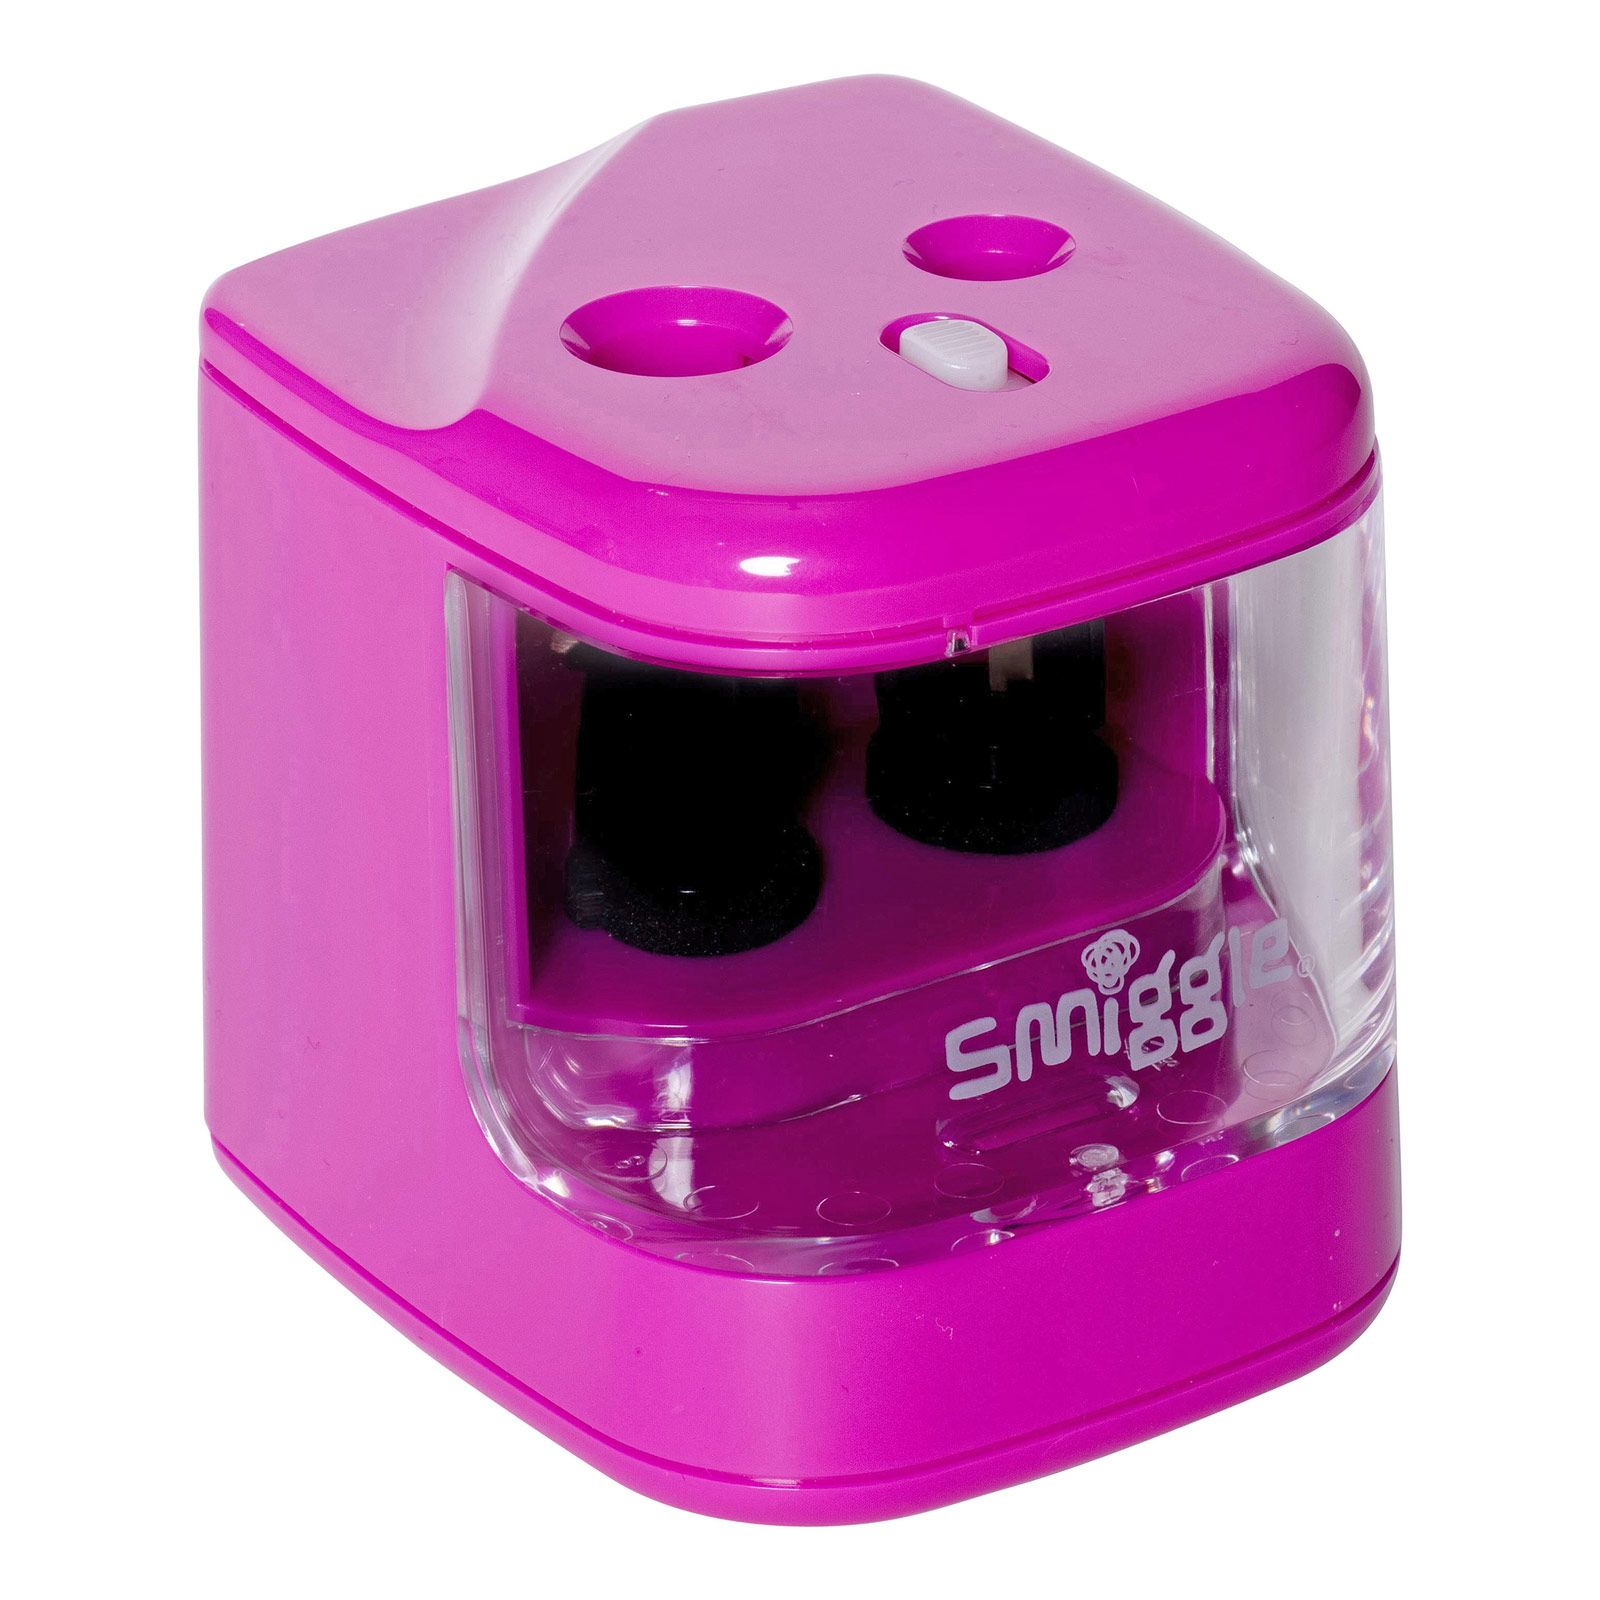 smiggle watch this space instructions